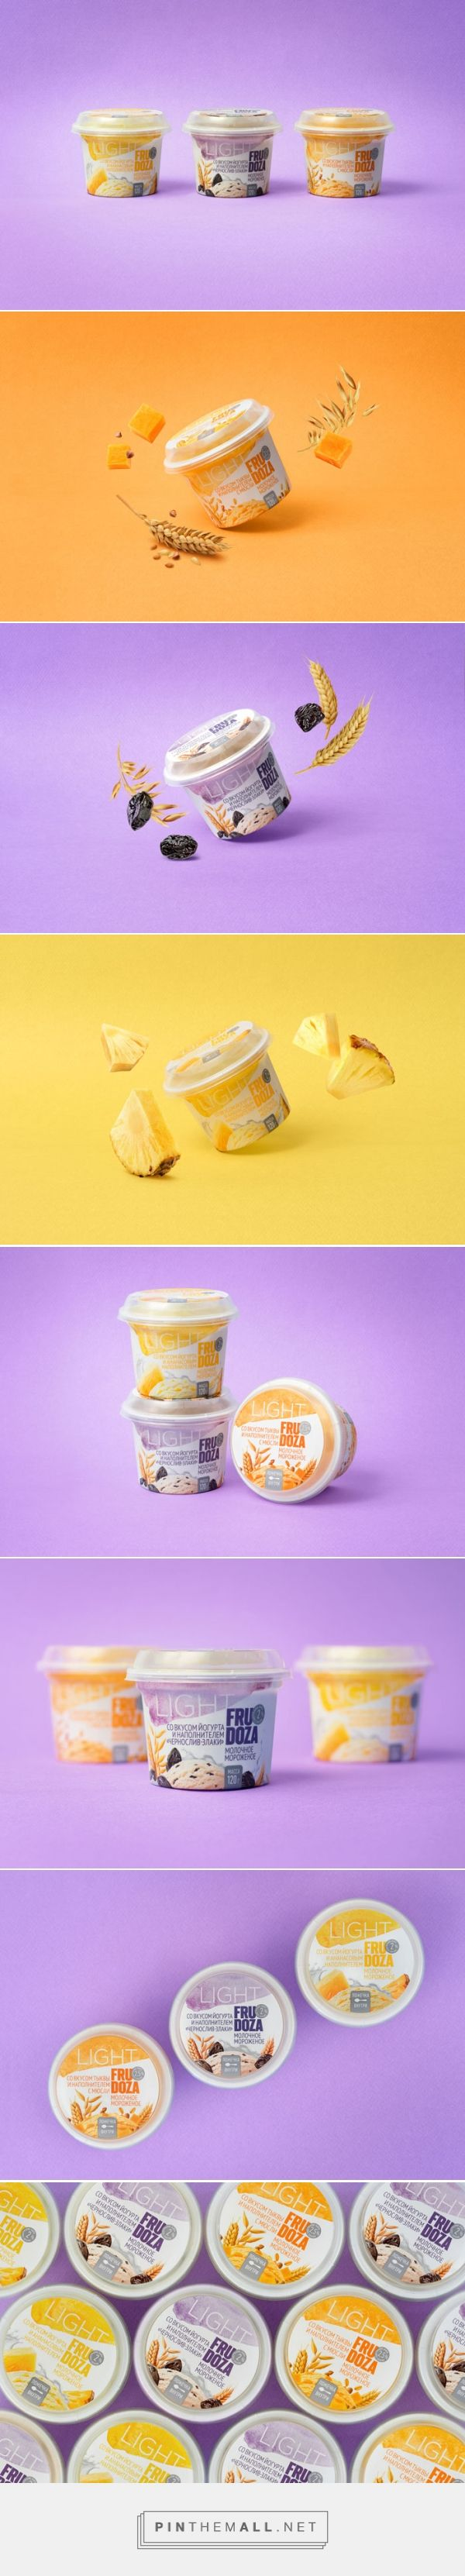 FRUDOZA Light Ice Cream -  Packaging of the World - Creative Package Design Gallery - http://www.packagingoftheworld.com/2017/08/frudoza-light-ice-cream.html